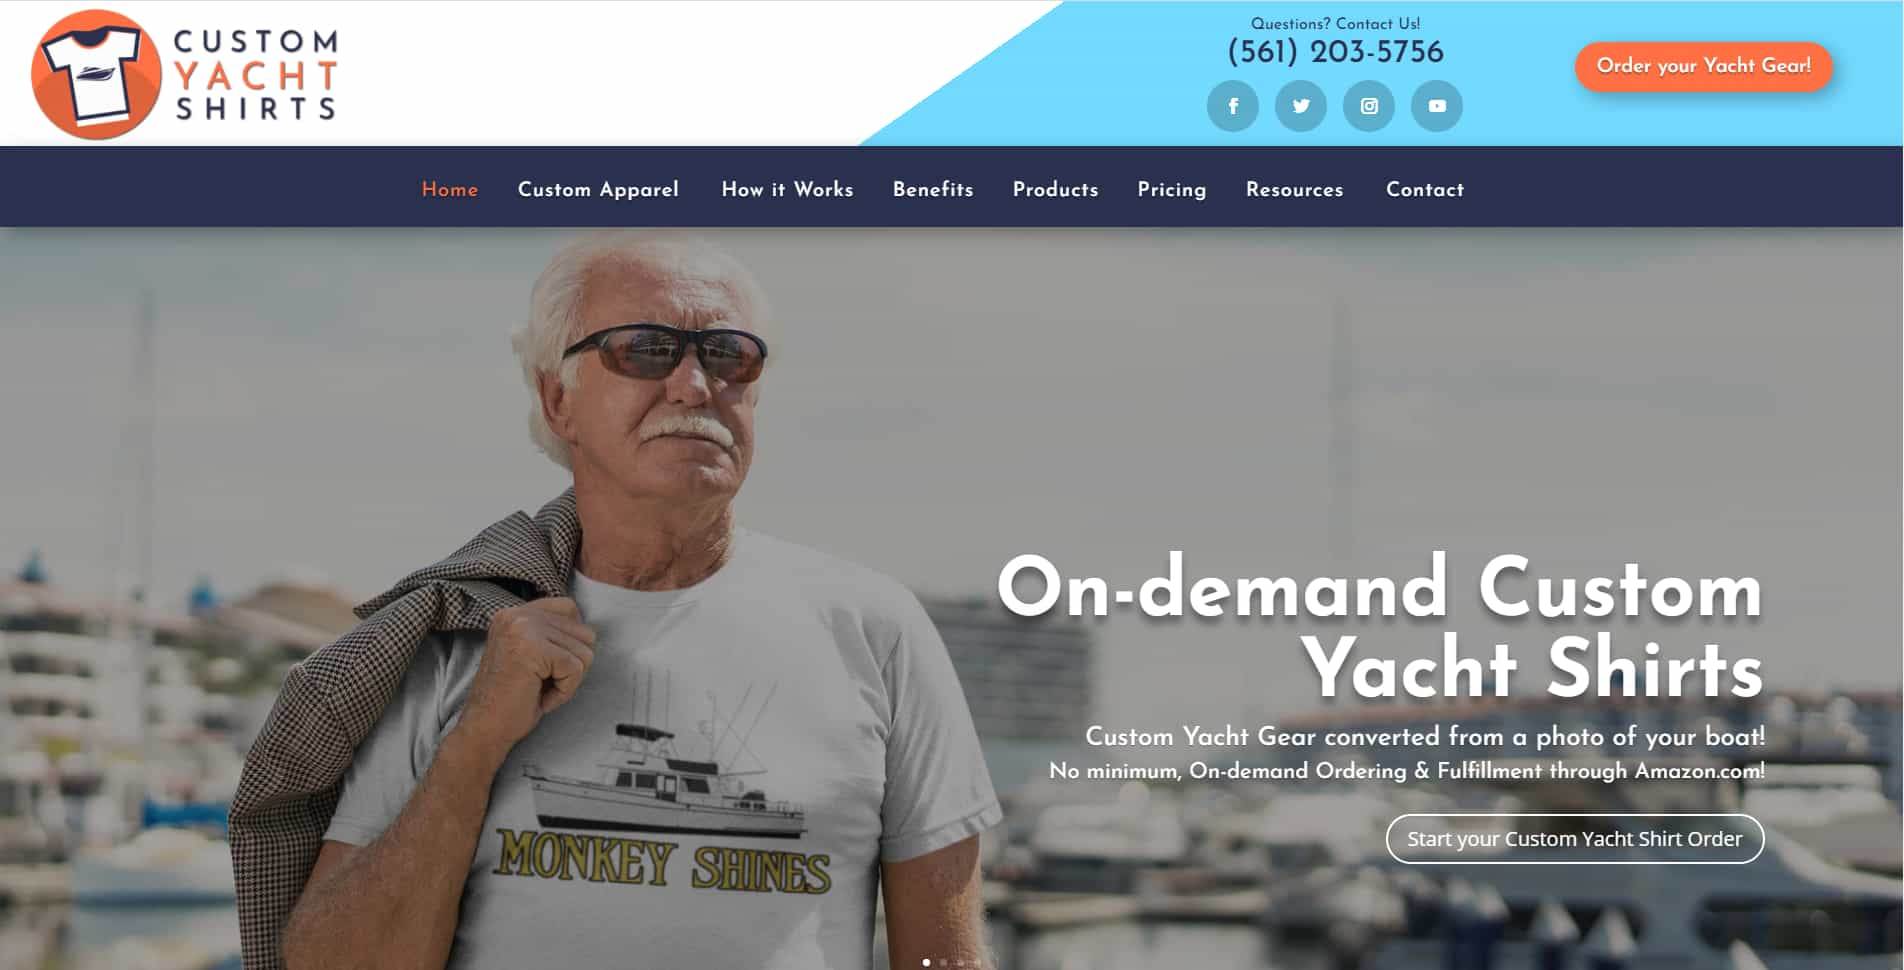 An image of the Custom Yacht Shirts website built by Not Fade Away.